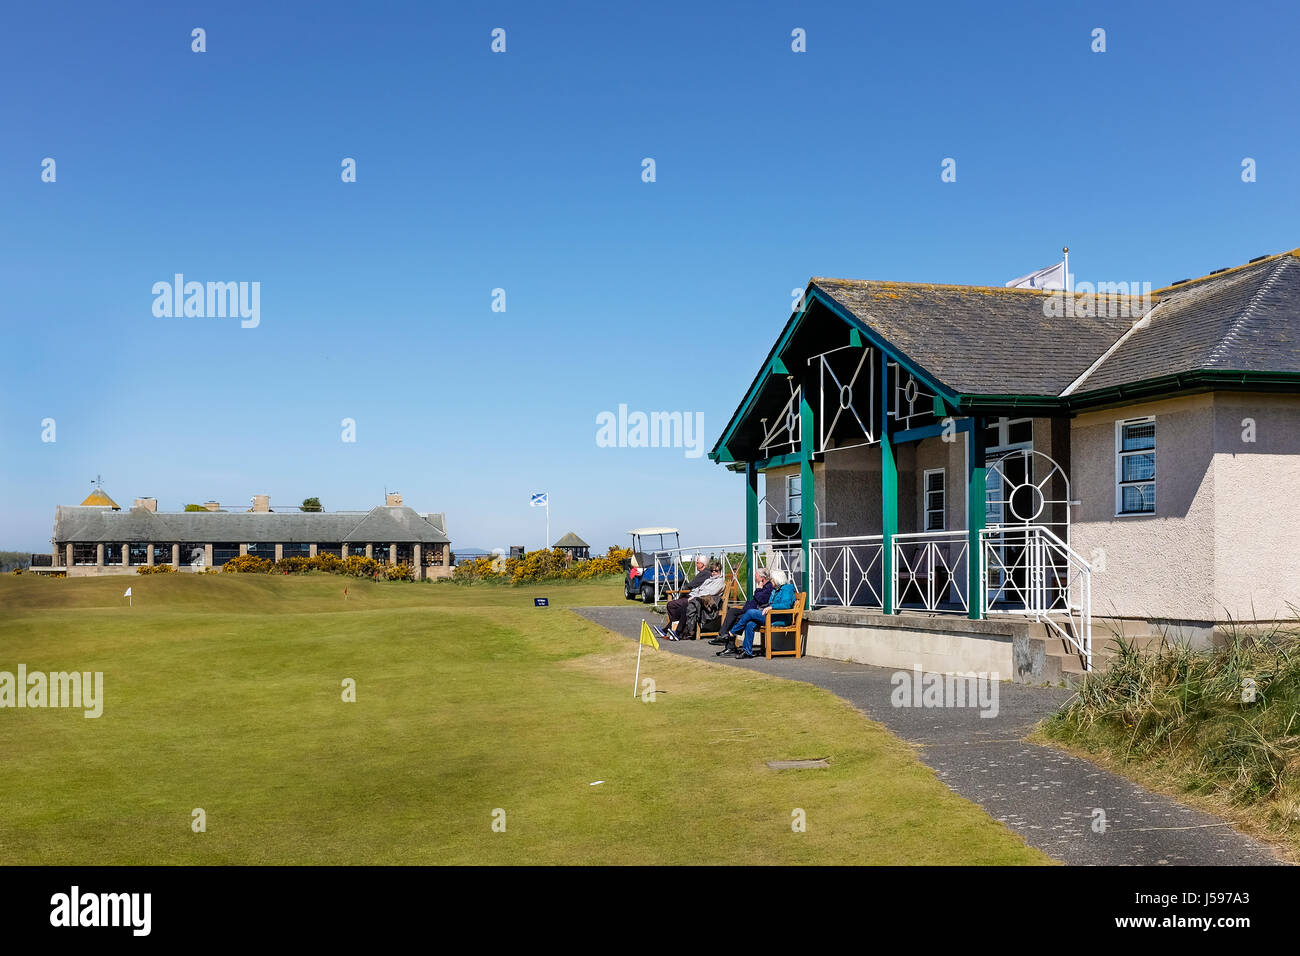 Clubhouse for the St Andrews Ladies Putting Club, The Himalayas Course, st Andrews, Fife, Scotland, UK - Stock Image